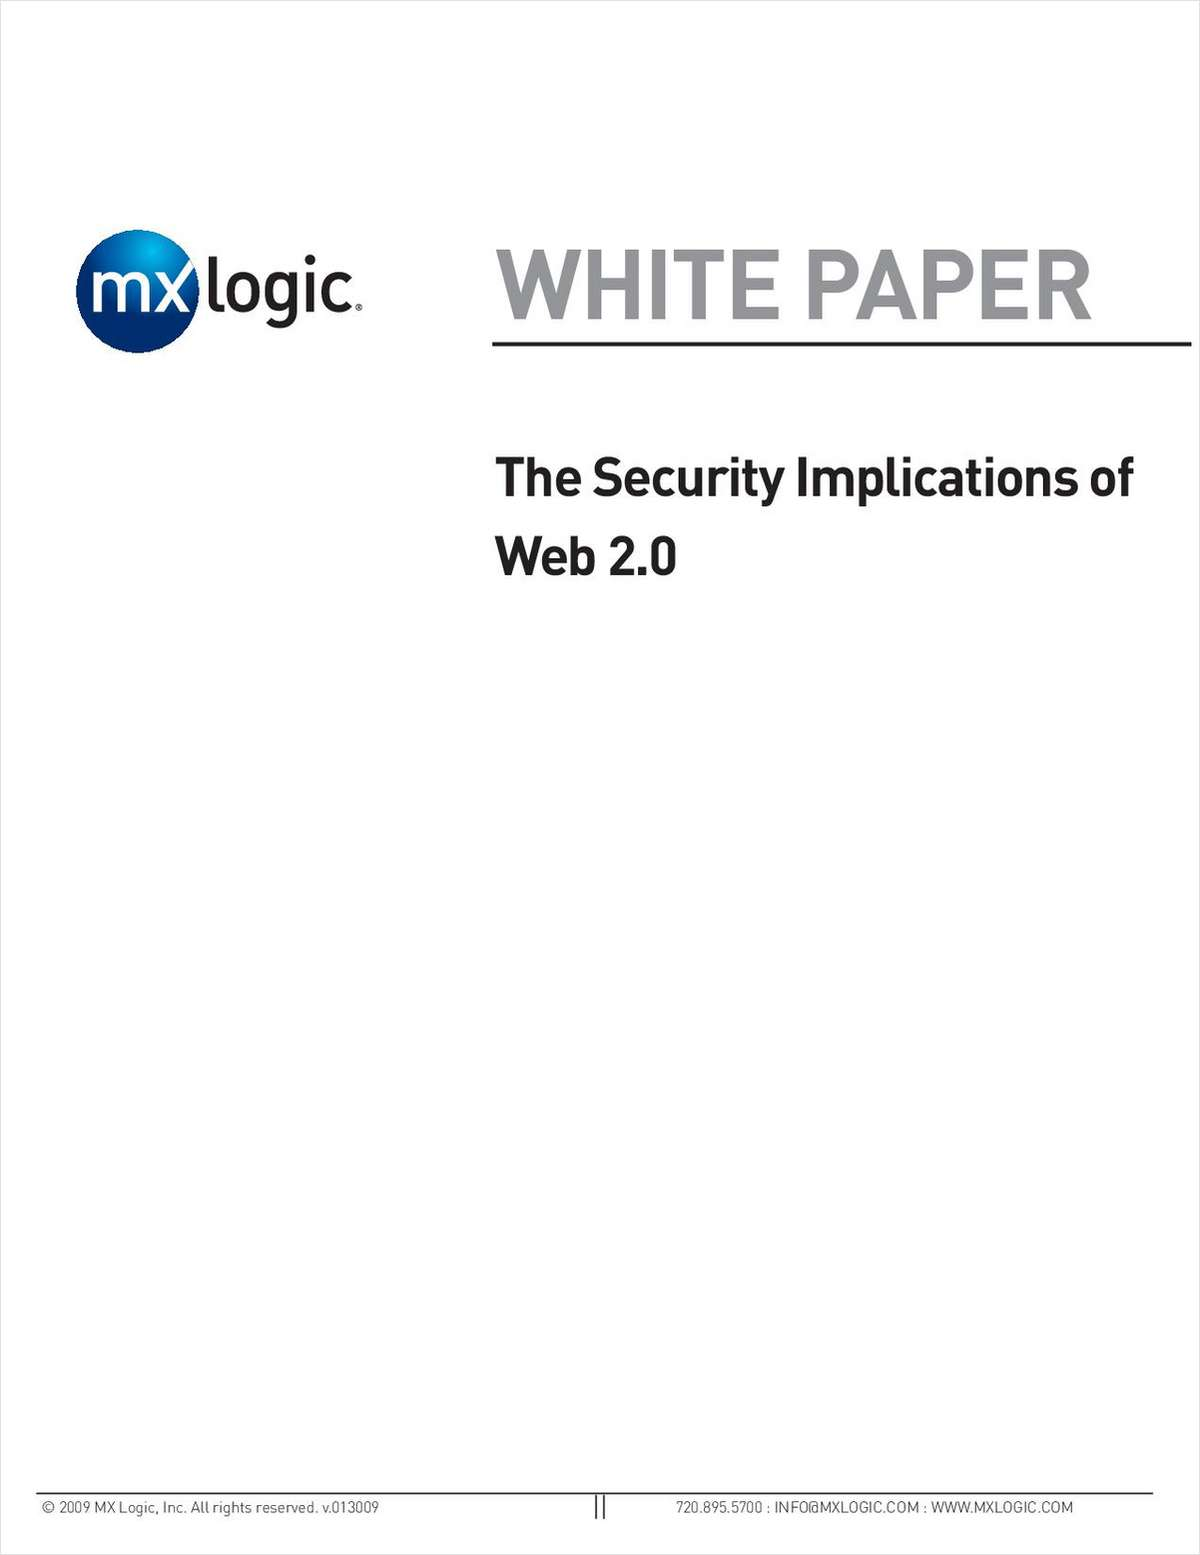 The Security Implications of Web 2.0